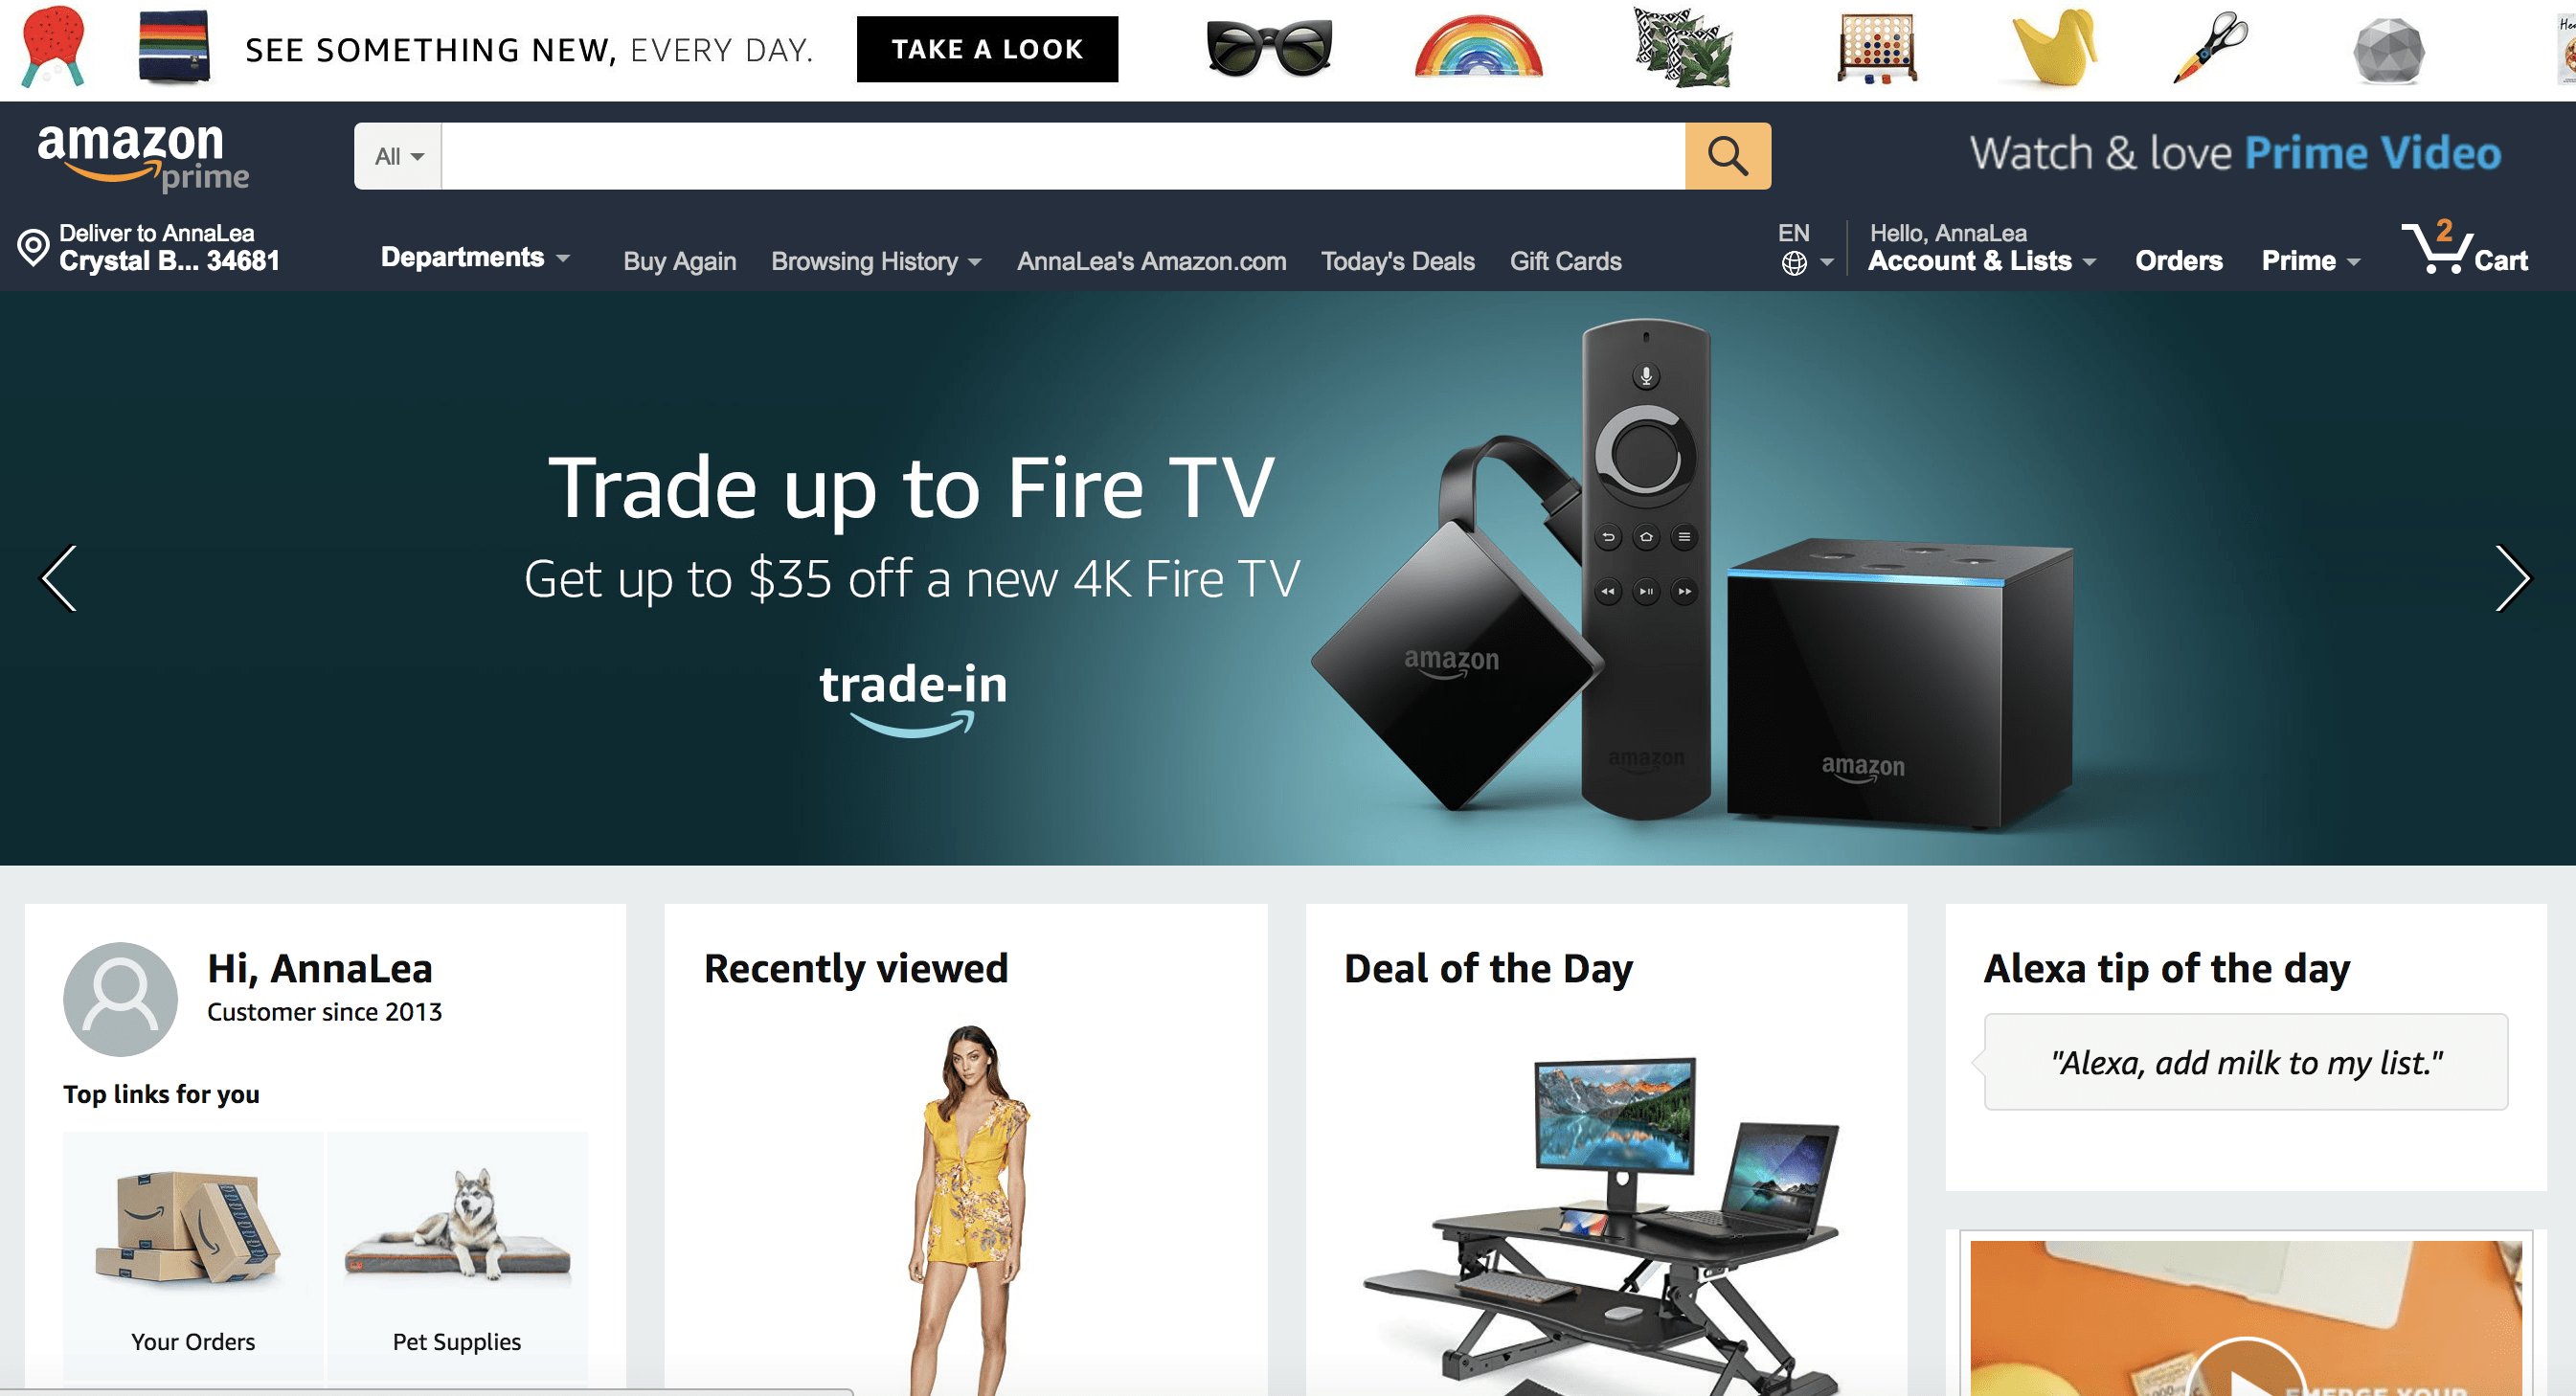 Amazon adaptive web design